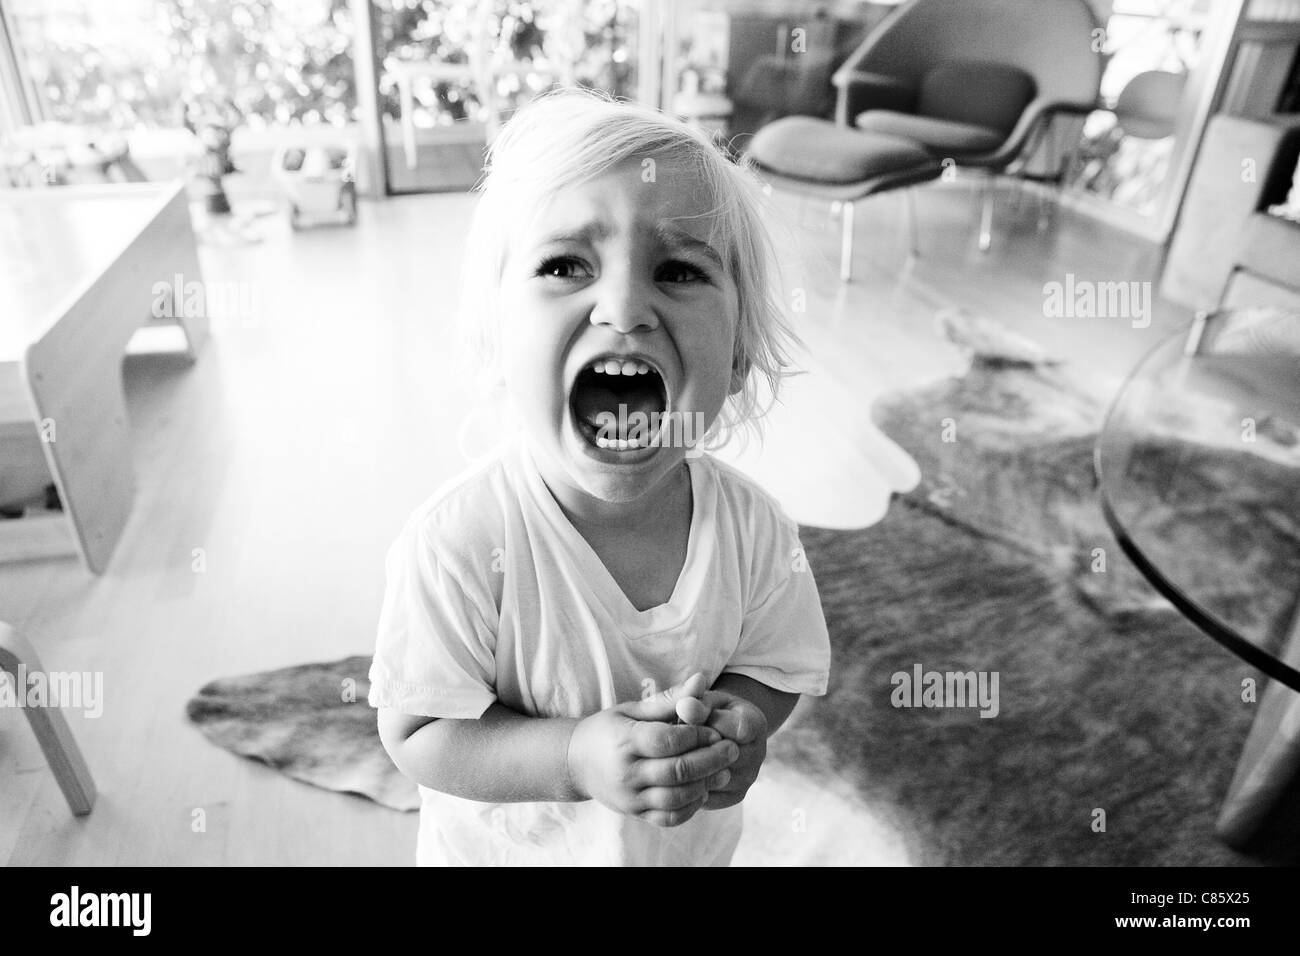 Little boy screaming - Stock Image